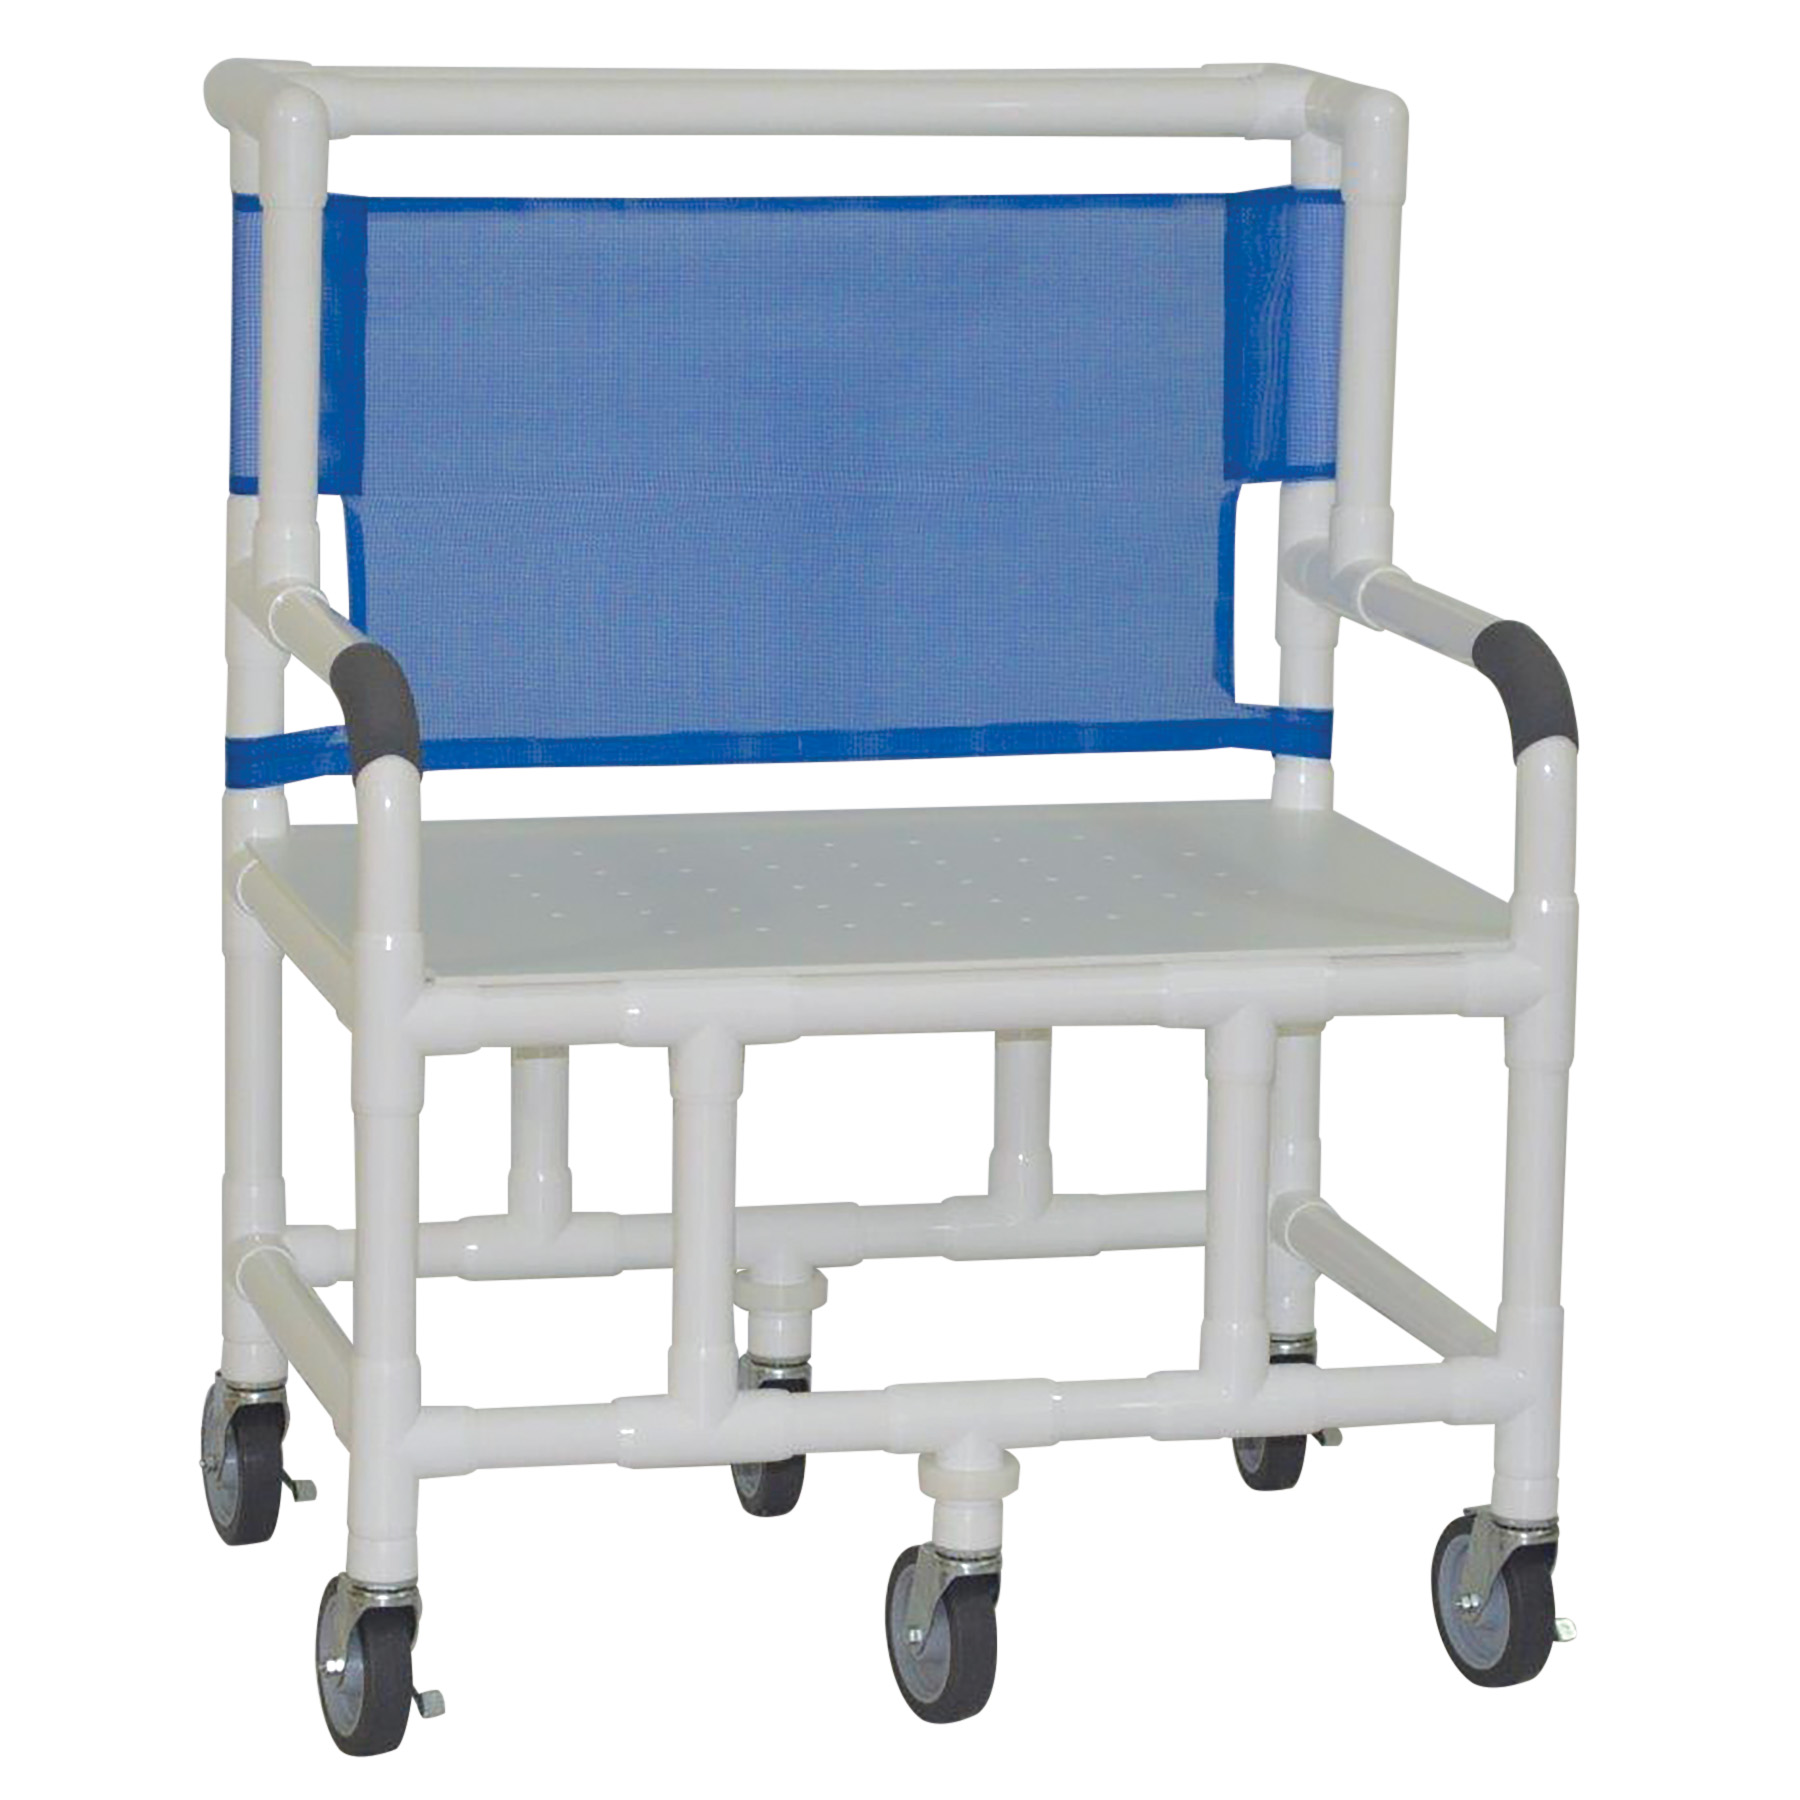 Model 130 5 F Bariatric Shower Chair With Flat Seat